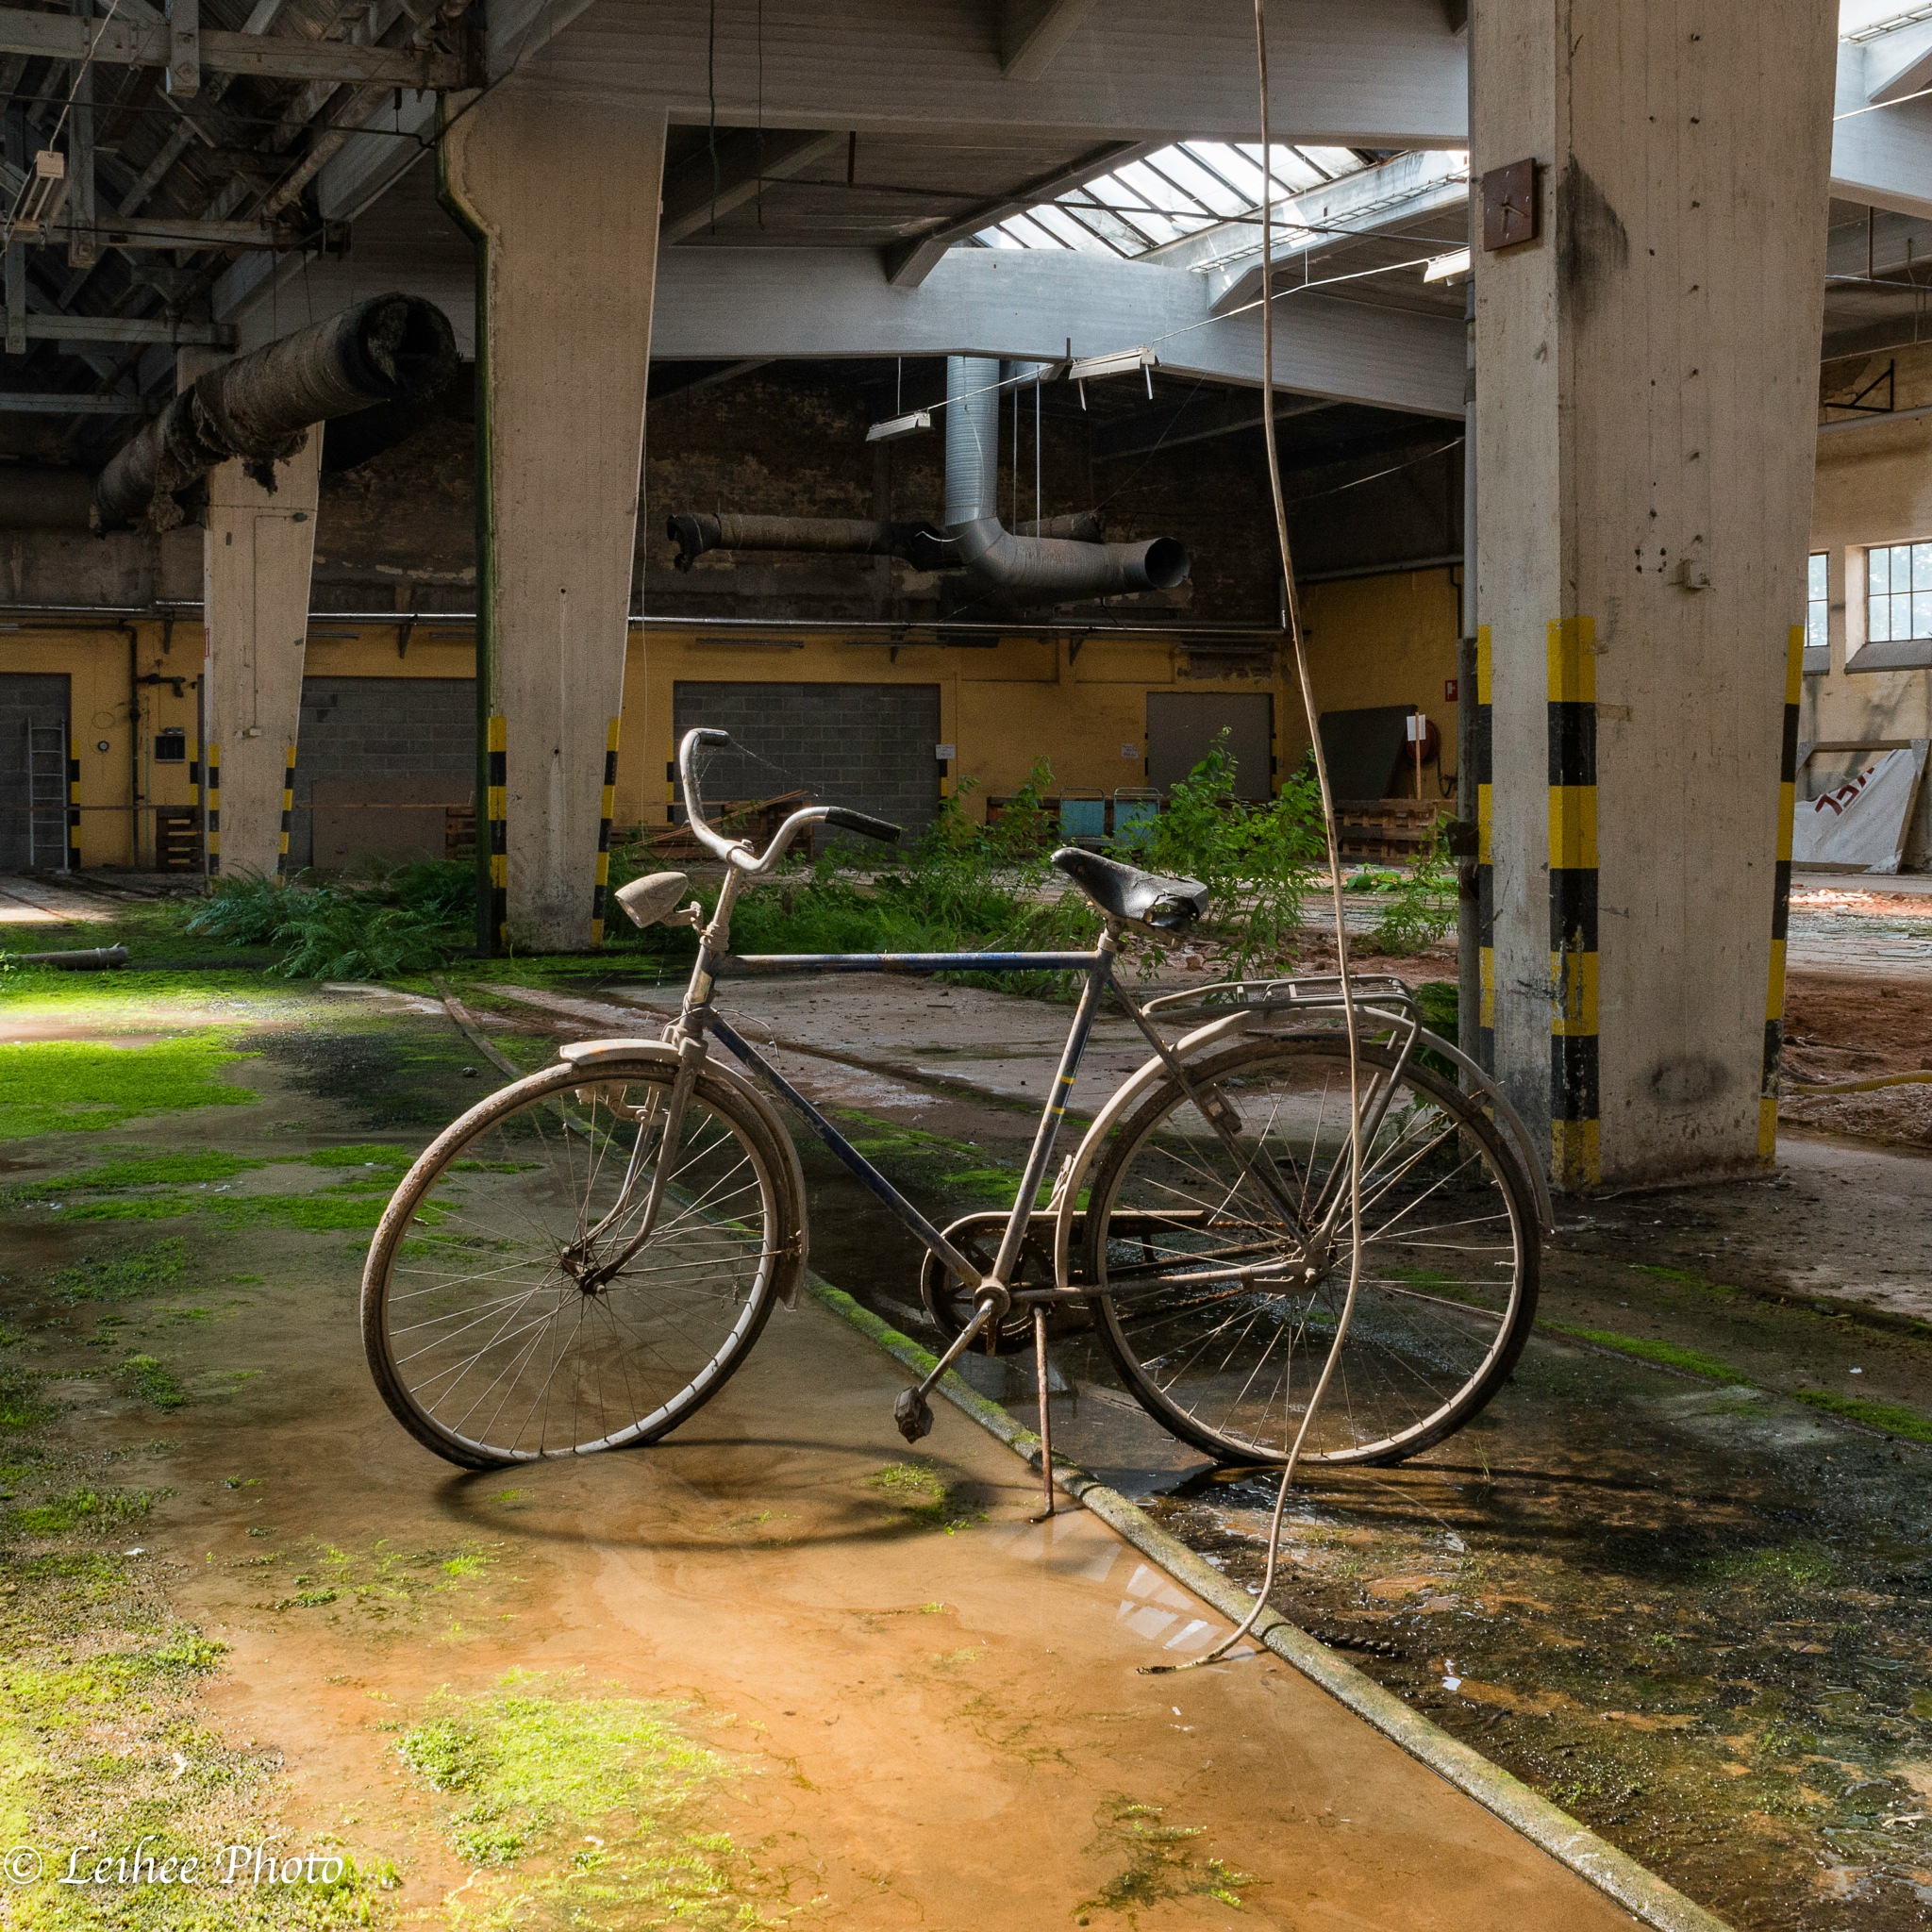 Abandoned by Leif Heering